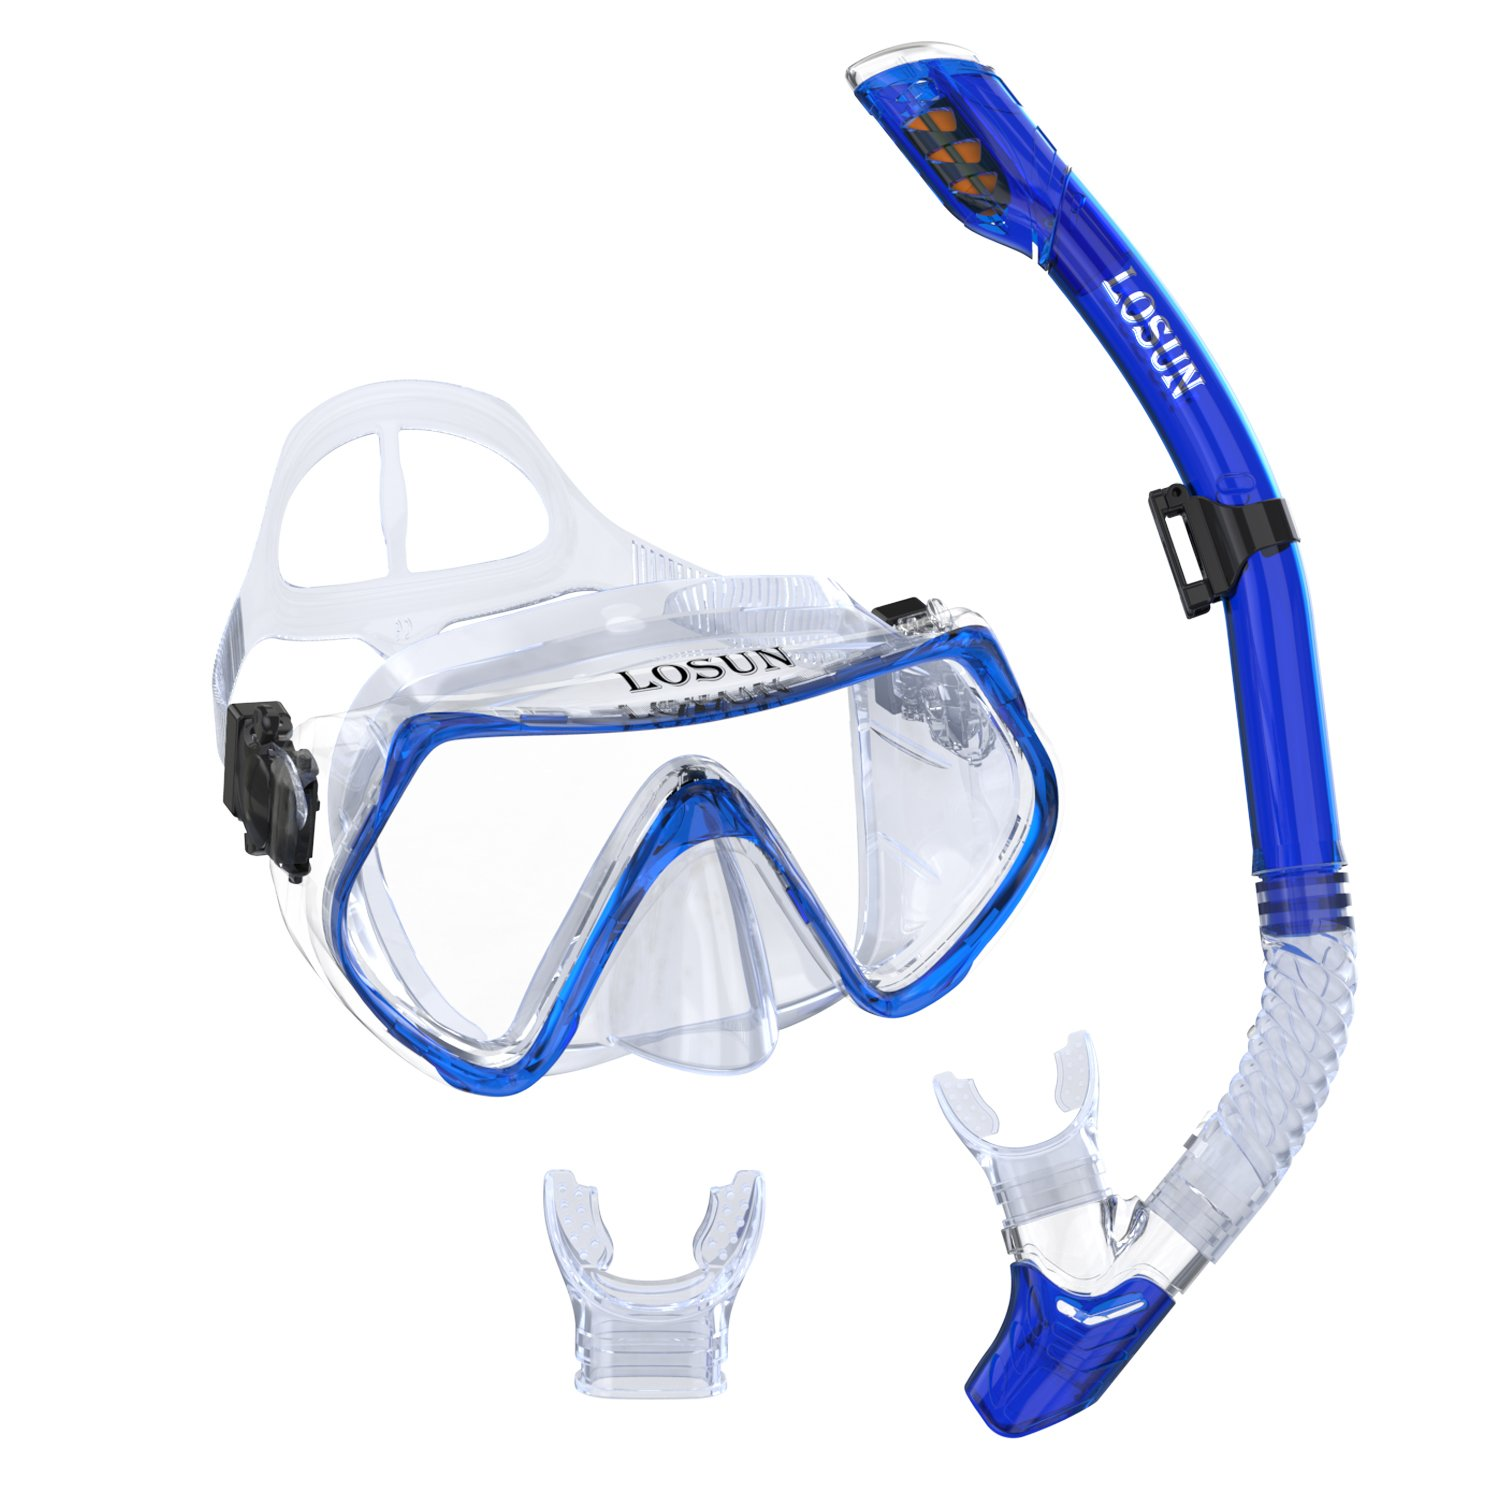 Losun Snorkel Mask Set for Adult with 2 Mouthpieces, Diving Swimming Goggles Mask Dry Snorkel Tube Set by Losun